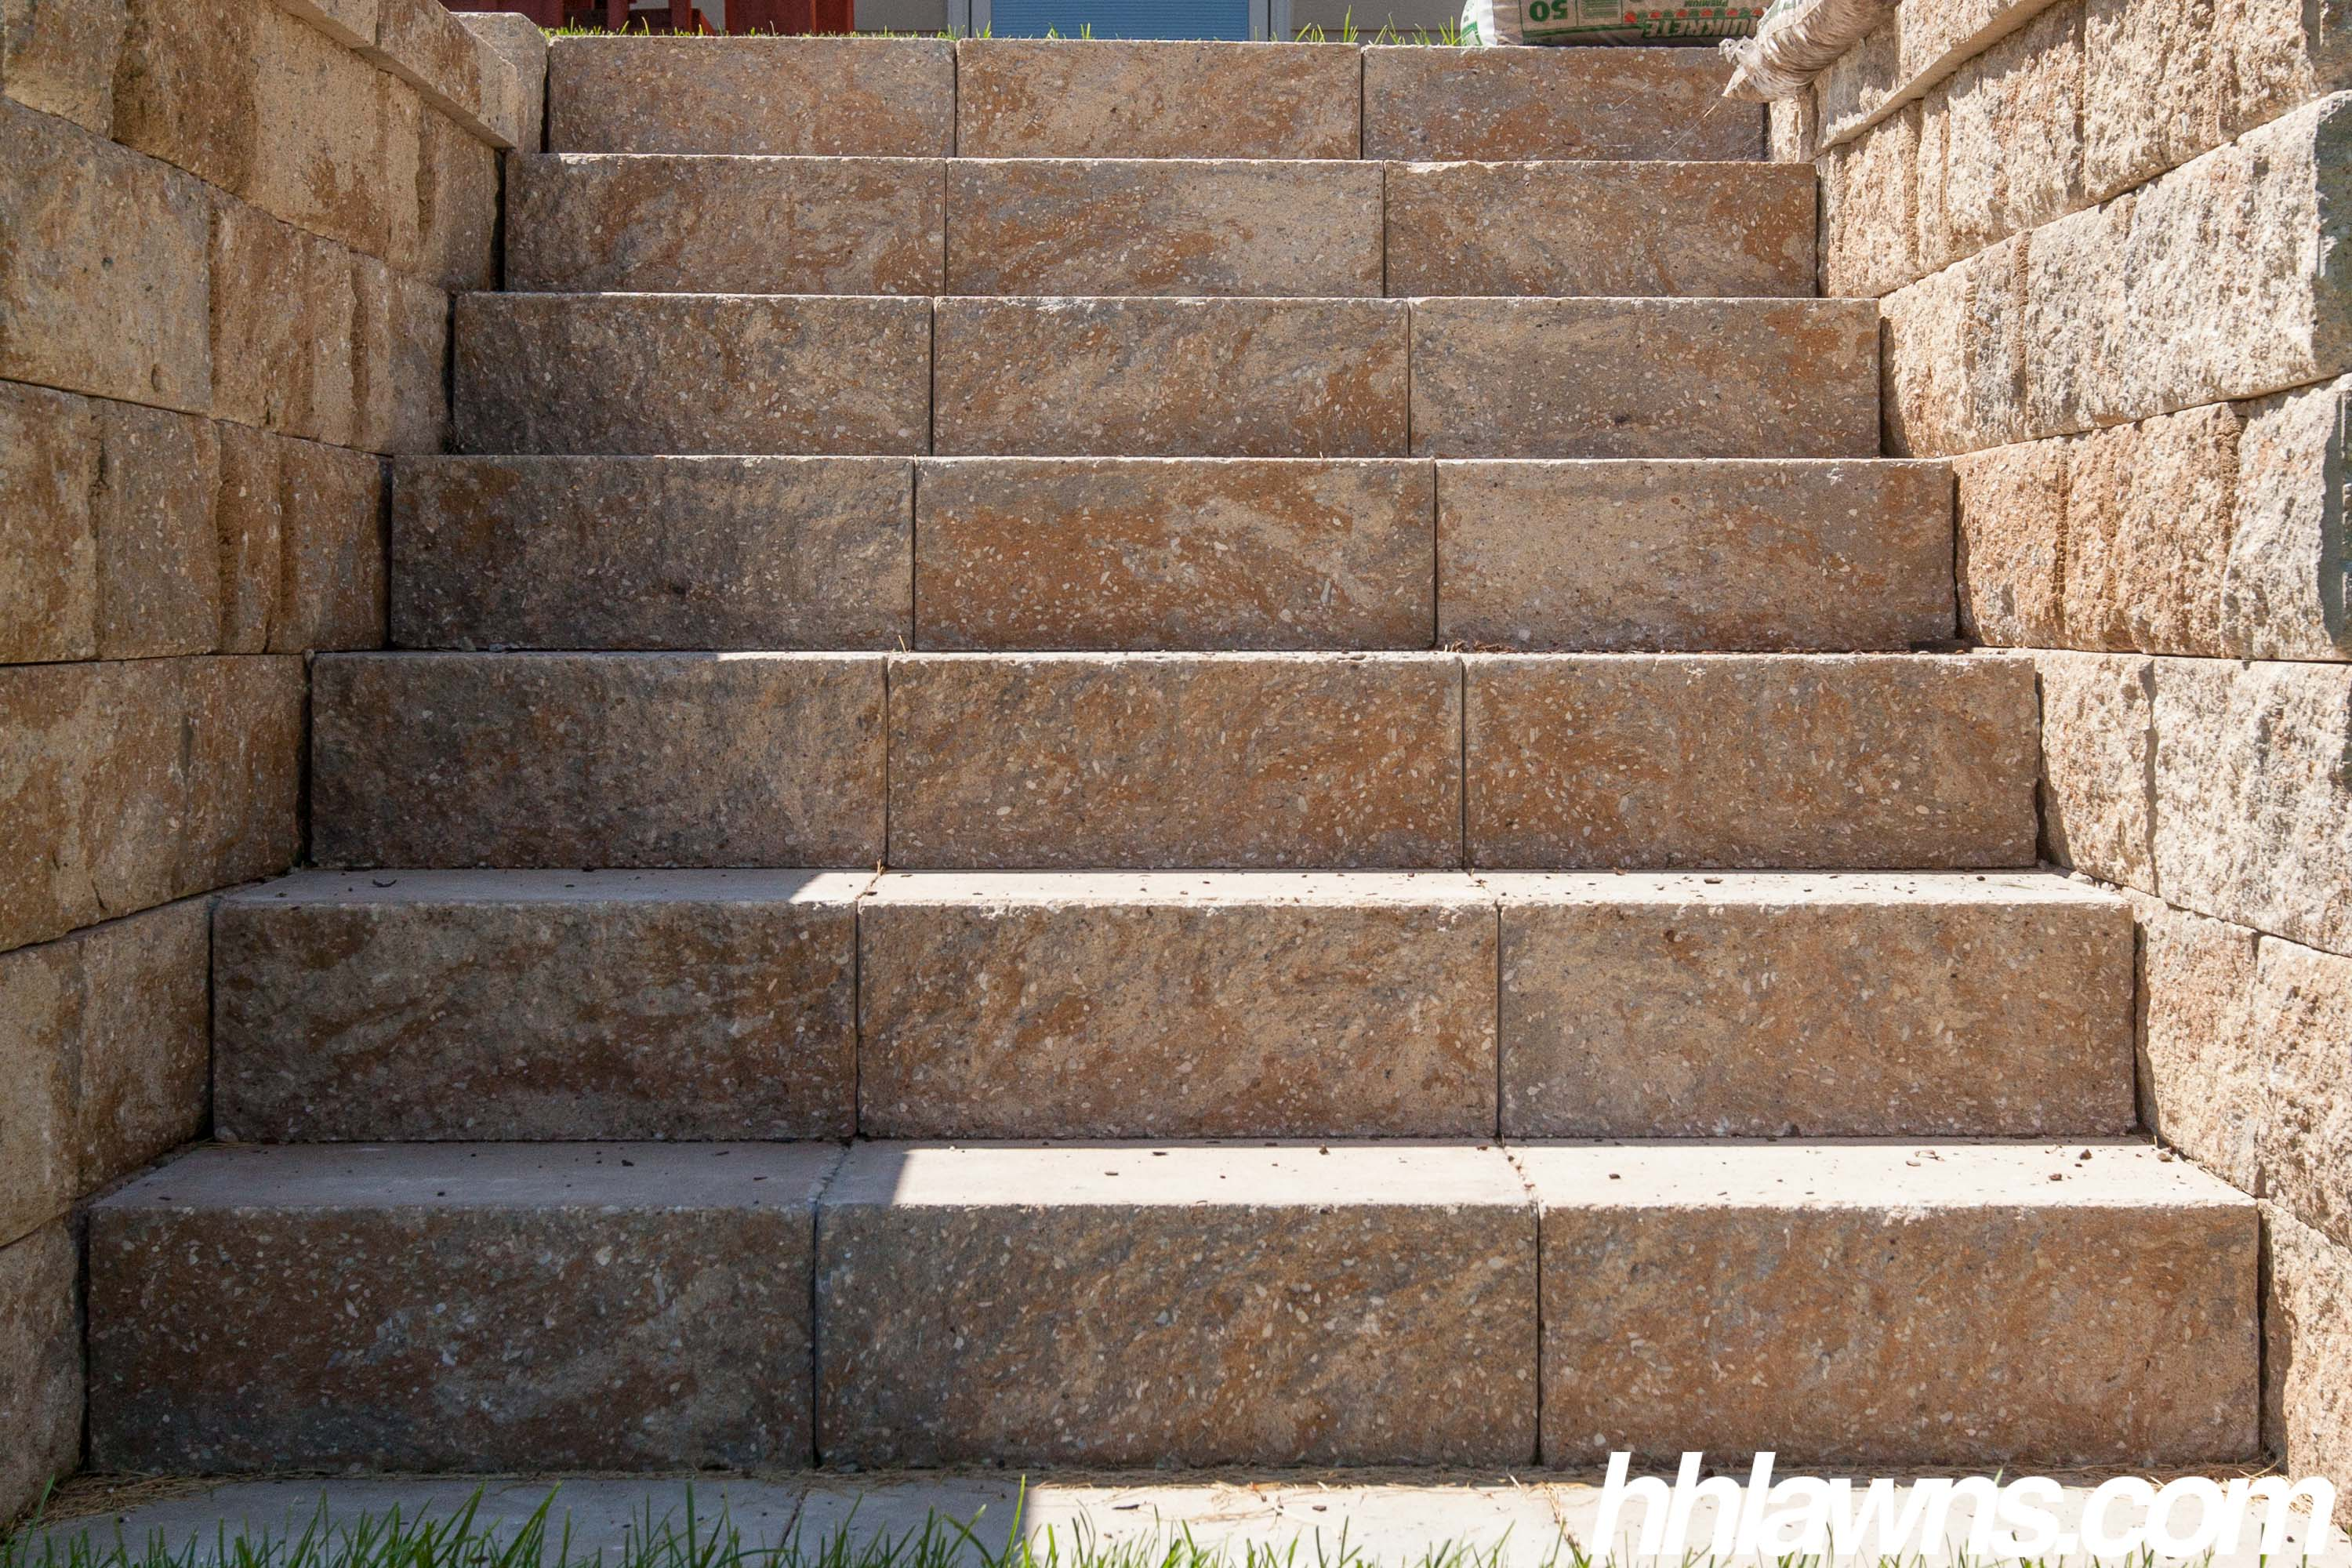 Retaining Walls H&H Lawn and Landscape - Omaha, NE